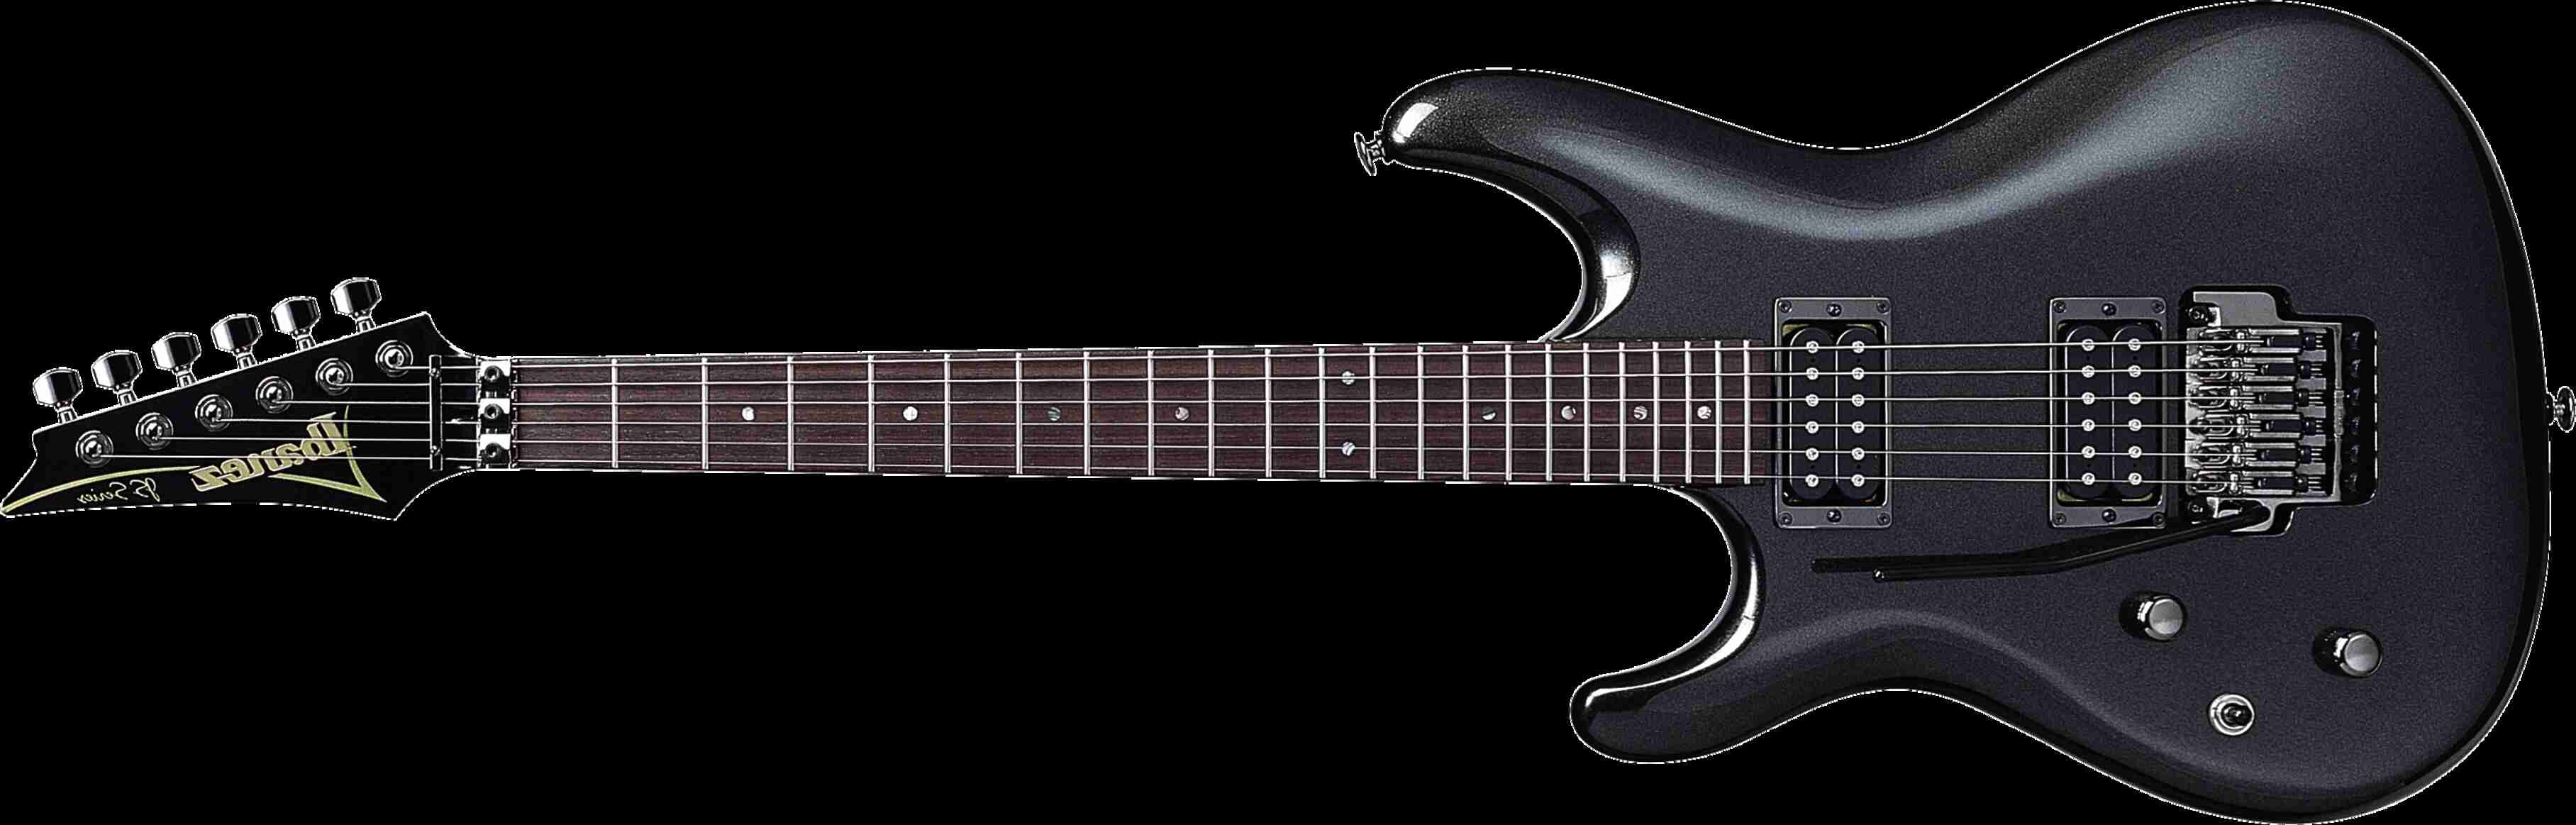 ibanez js1000 for sale